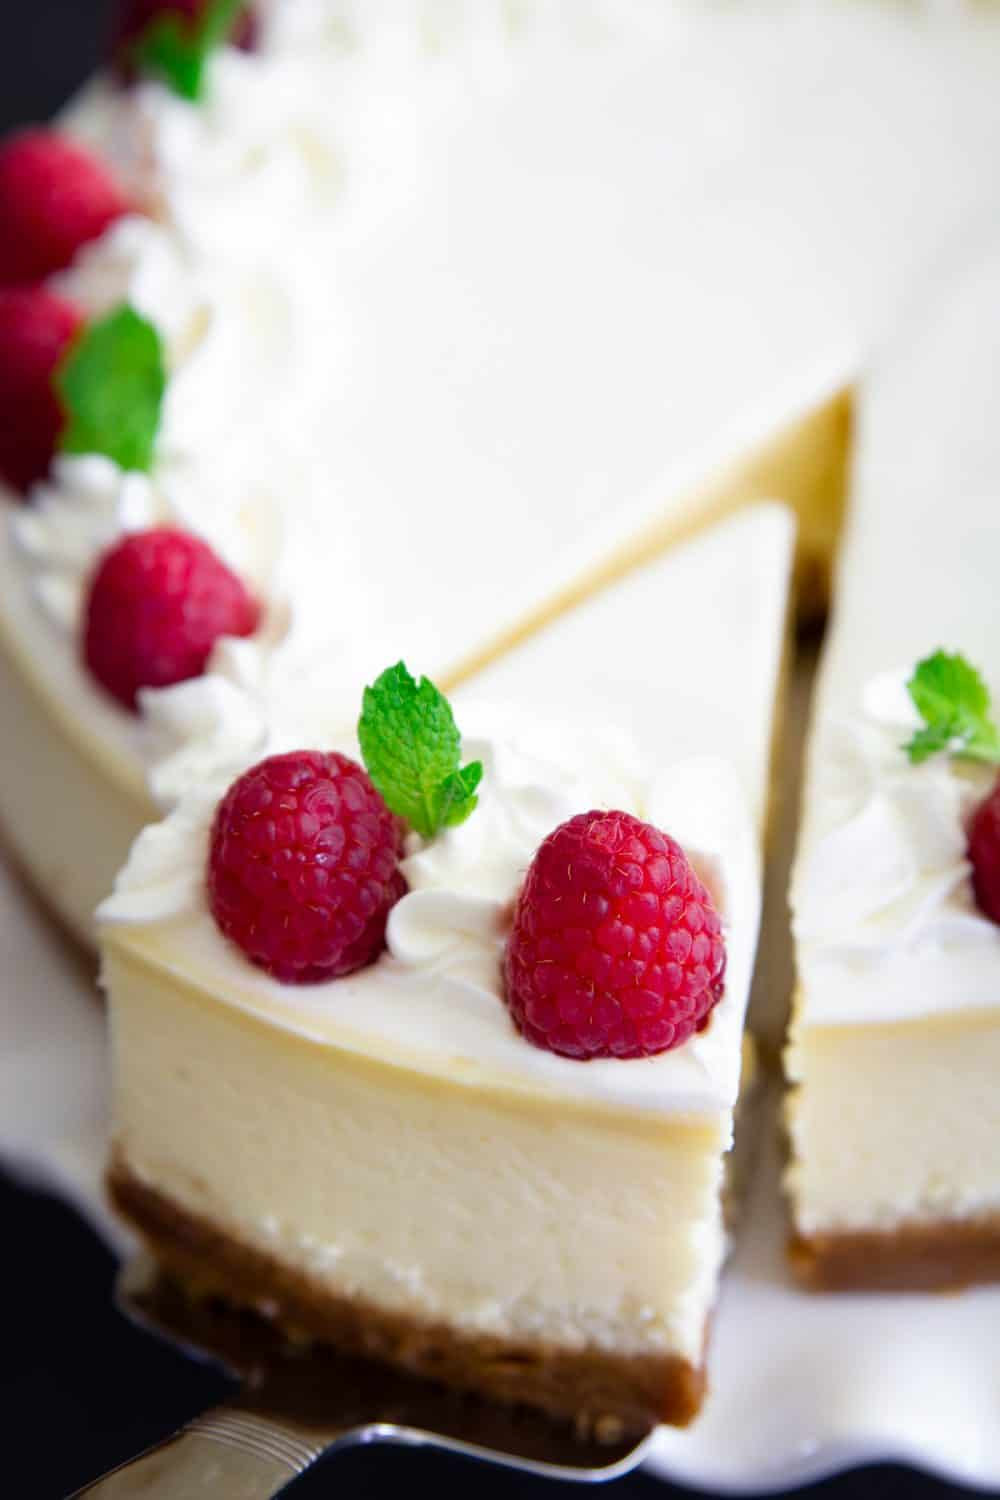 new york style cheesecake with raspberries and mint on top